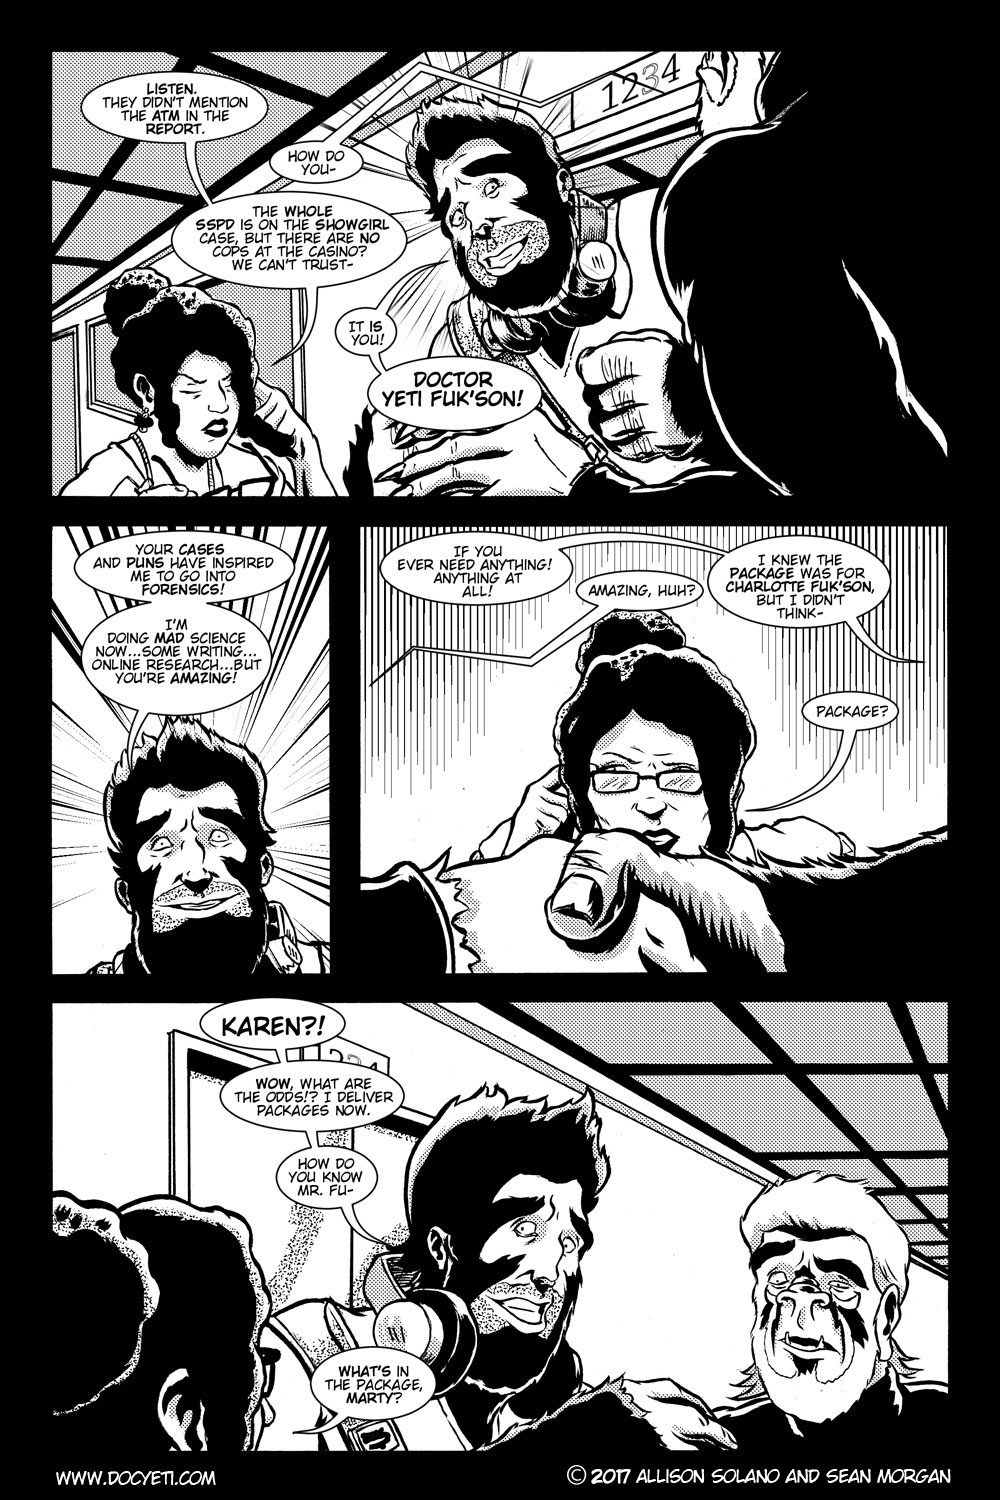 This Yeti for Hire! or the Yeti with the Lace Kerchief! Issue 3 pg.05